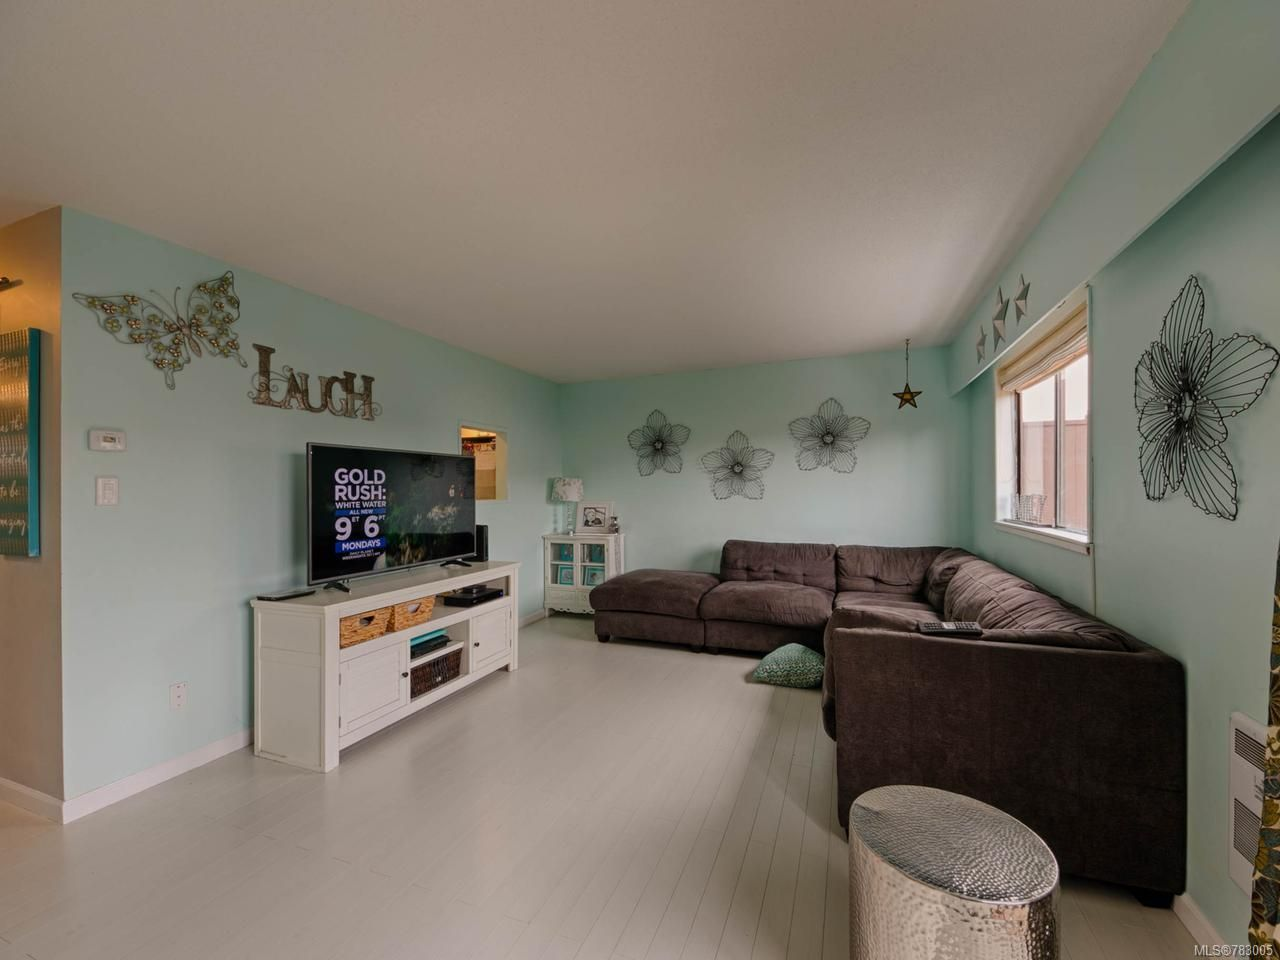 Photo 7: Photos: 19 500 Colwyn St in CAMPBELL RIVER: CR Campbell River Central Row/Townhouse for sale (Campbell River)  : MLS®# 783005